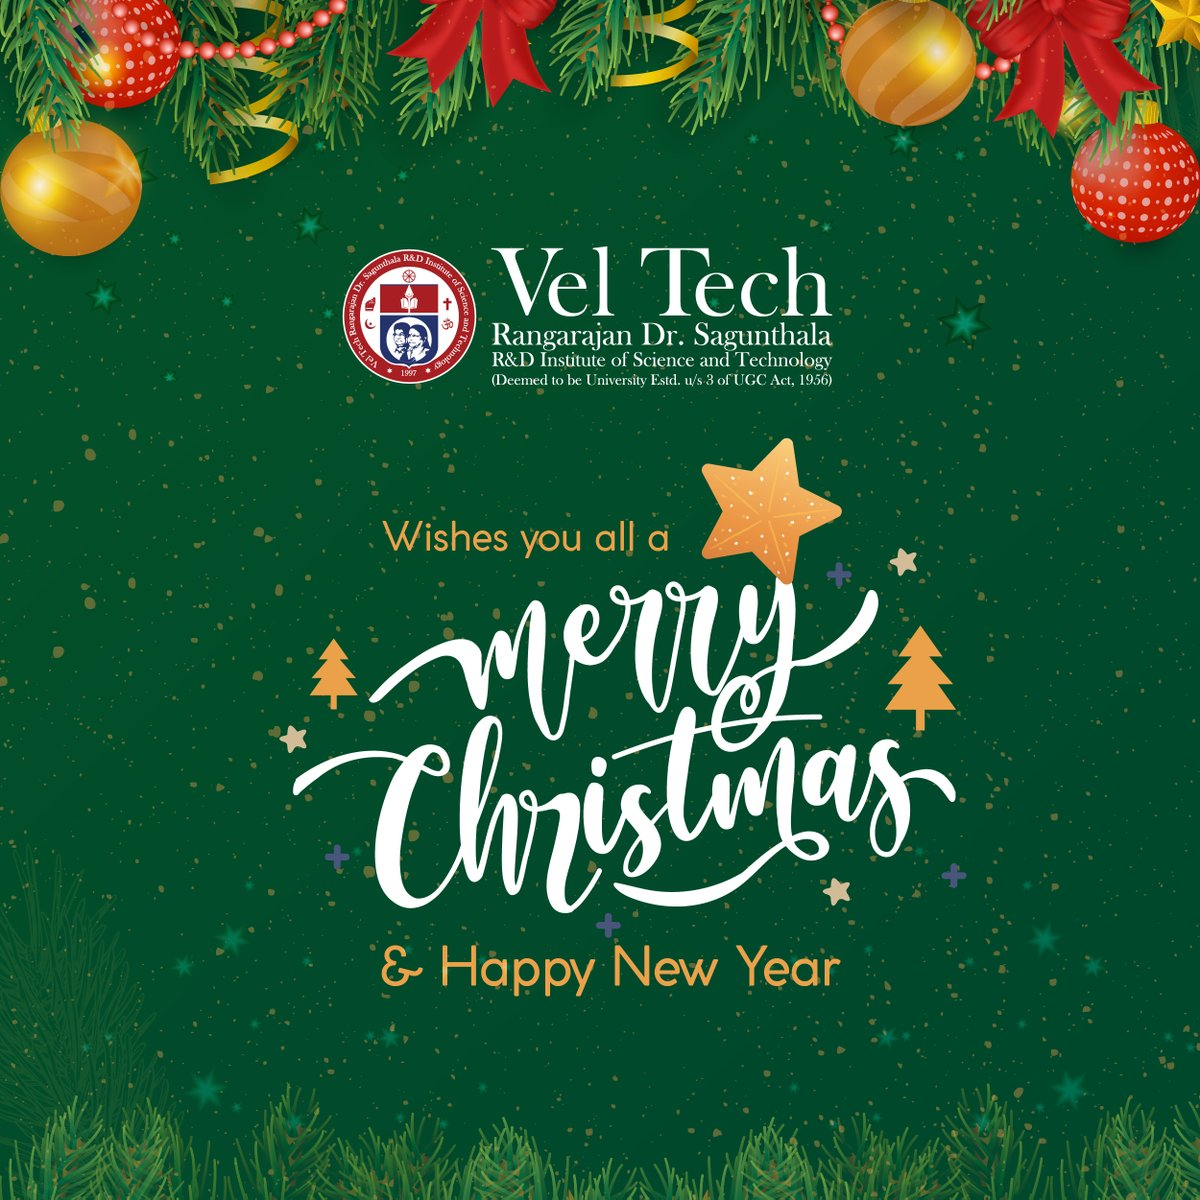 #Vel_Tech wishes everyone a #merrychristmas2020 and #HappyNewYear2021  #happyholidays #HappyThanksgiving2020 #christmas2020 #newyear2021